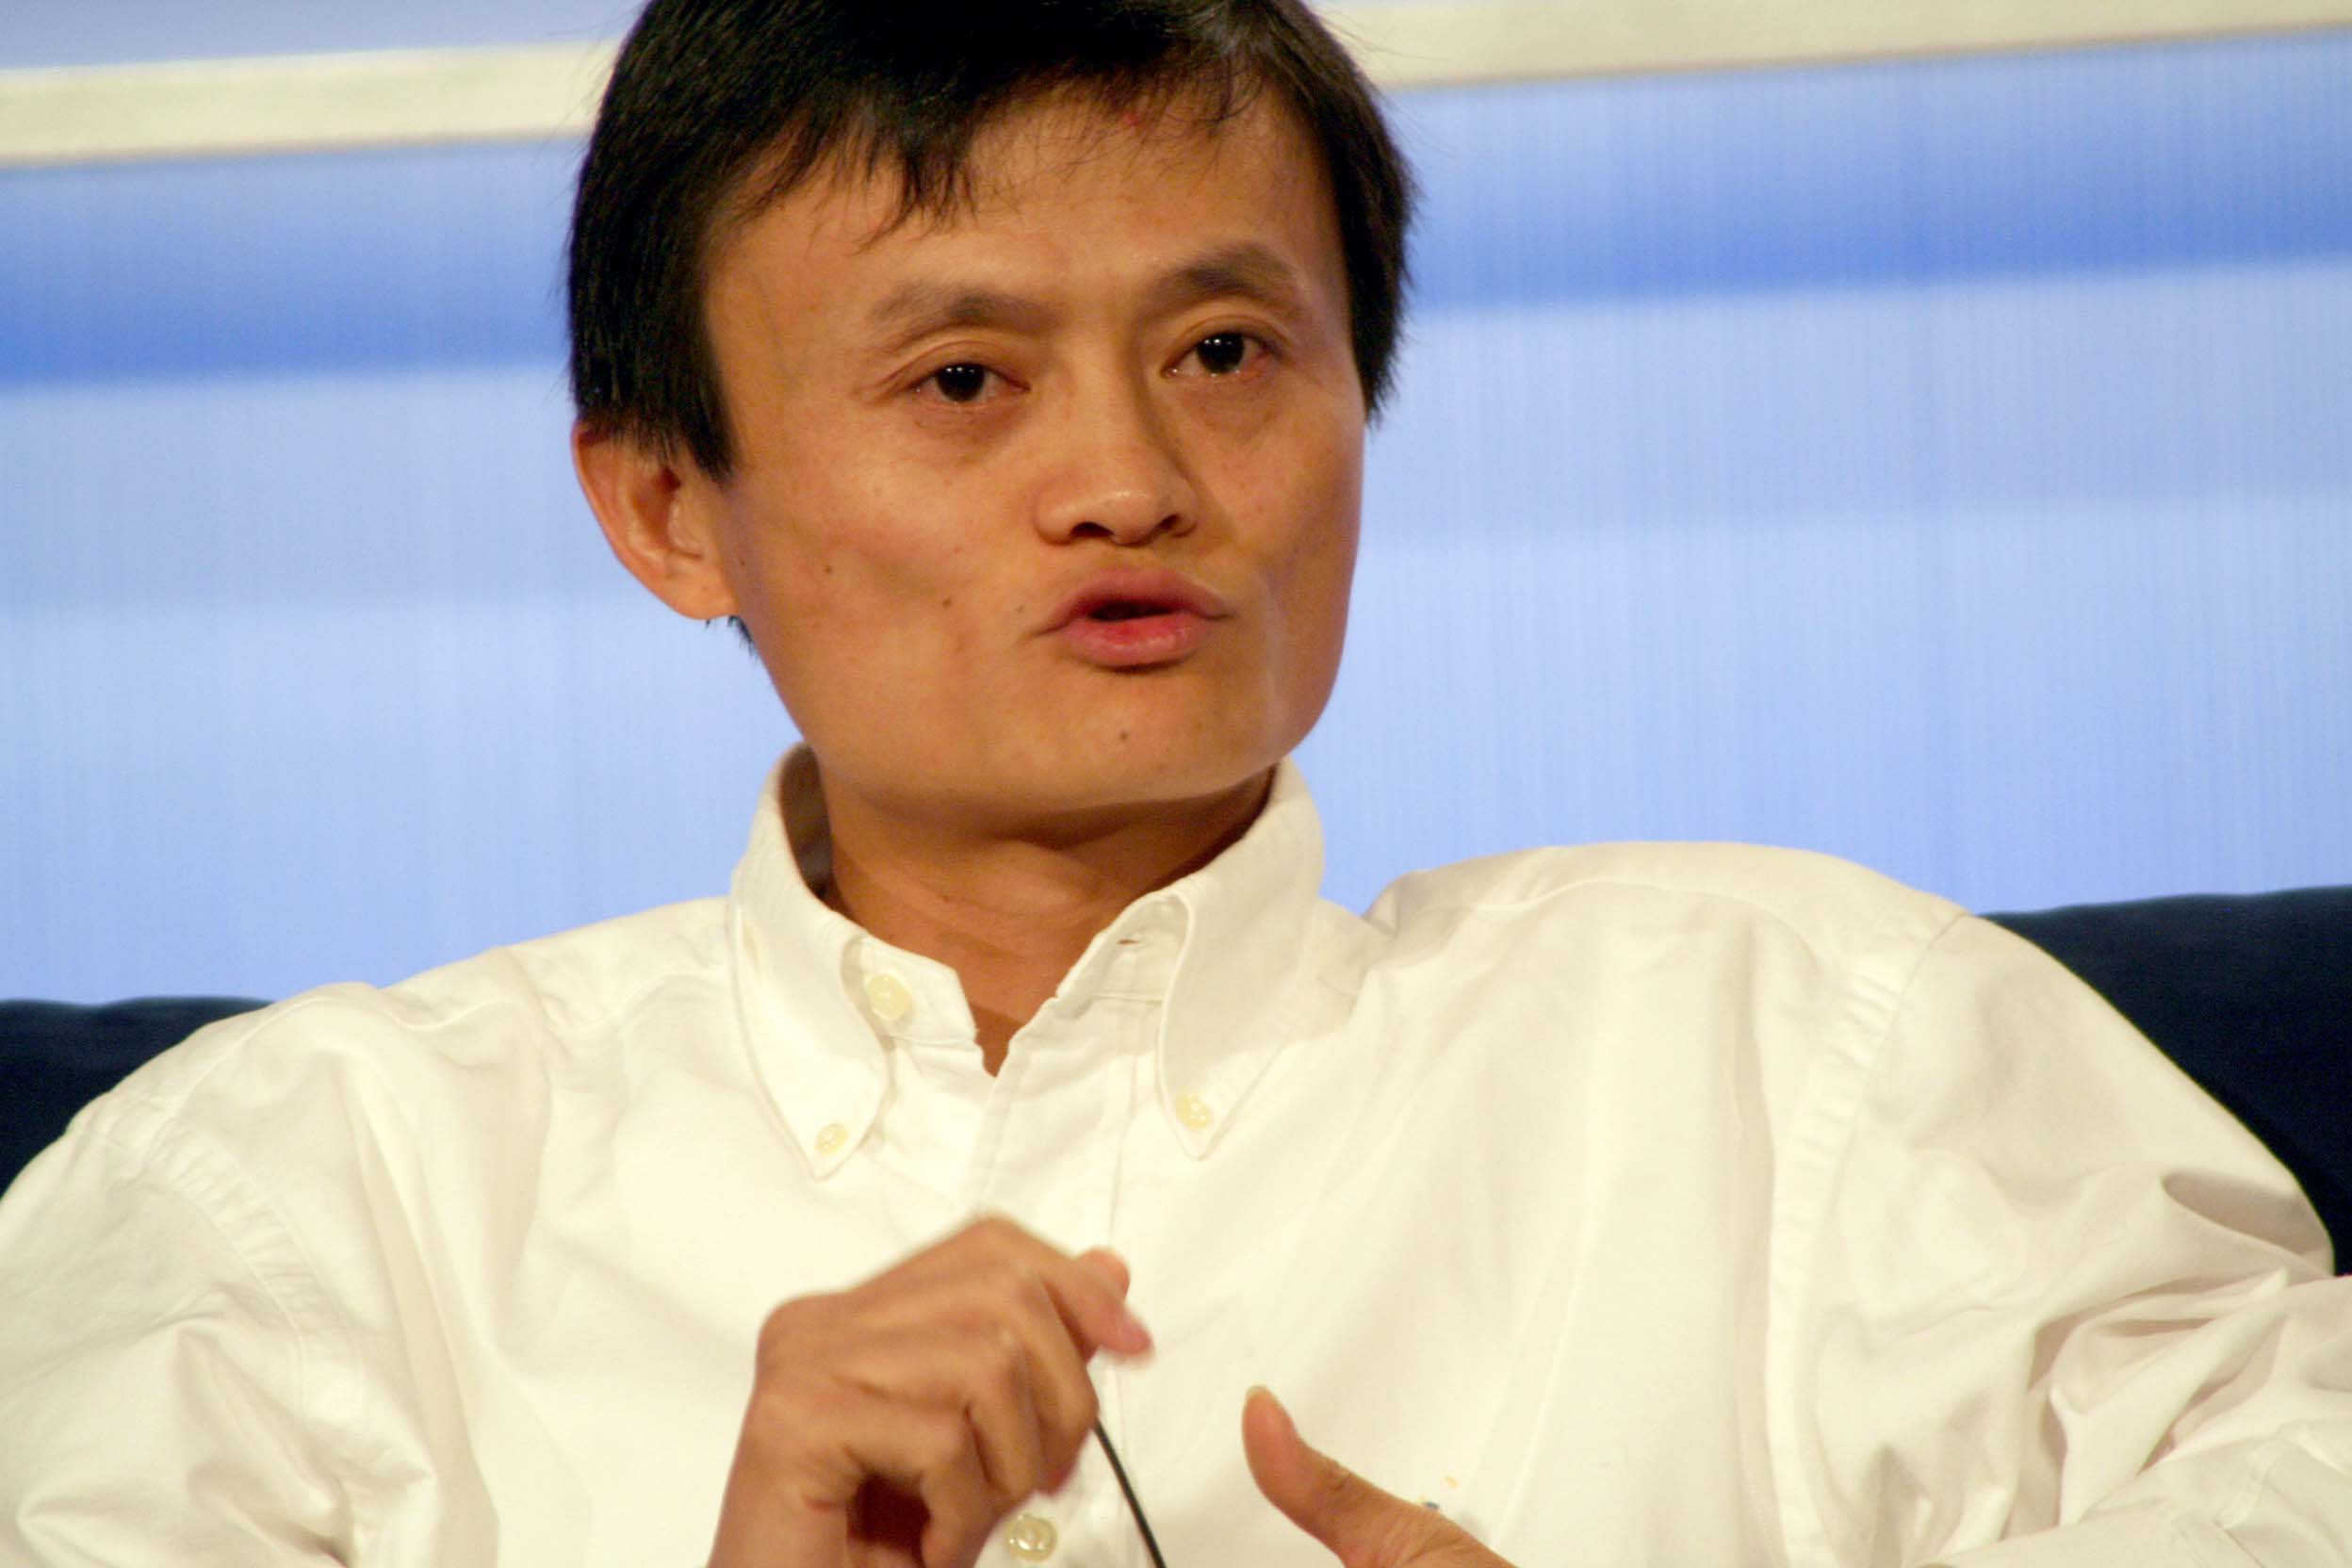 File:Jack Ma (292160777).jpg - Wikimedia Commons